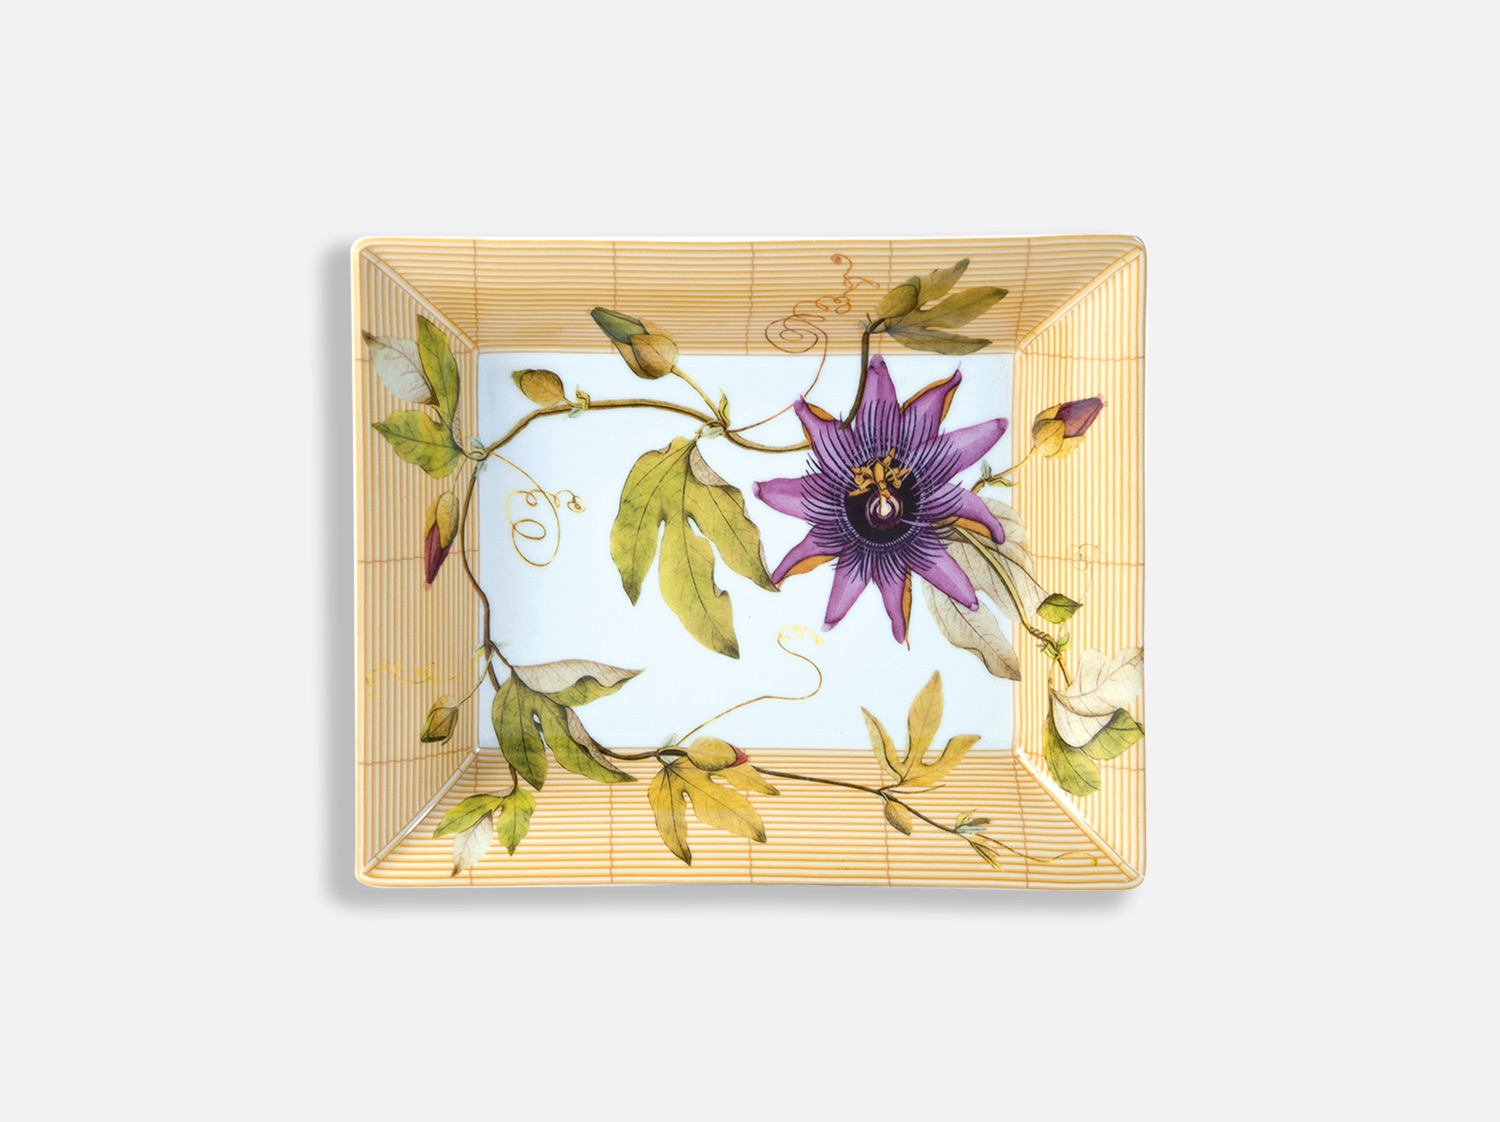 Vide-poches 20 x 16 cm en porcelaine de la collection Jardin indien Bernardaud